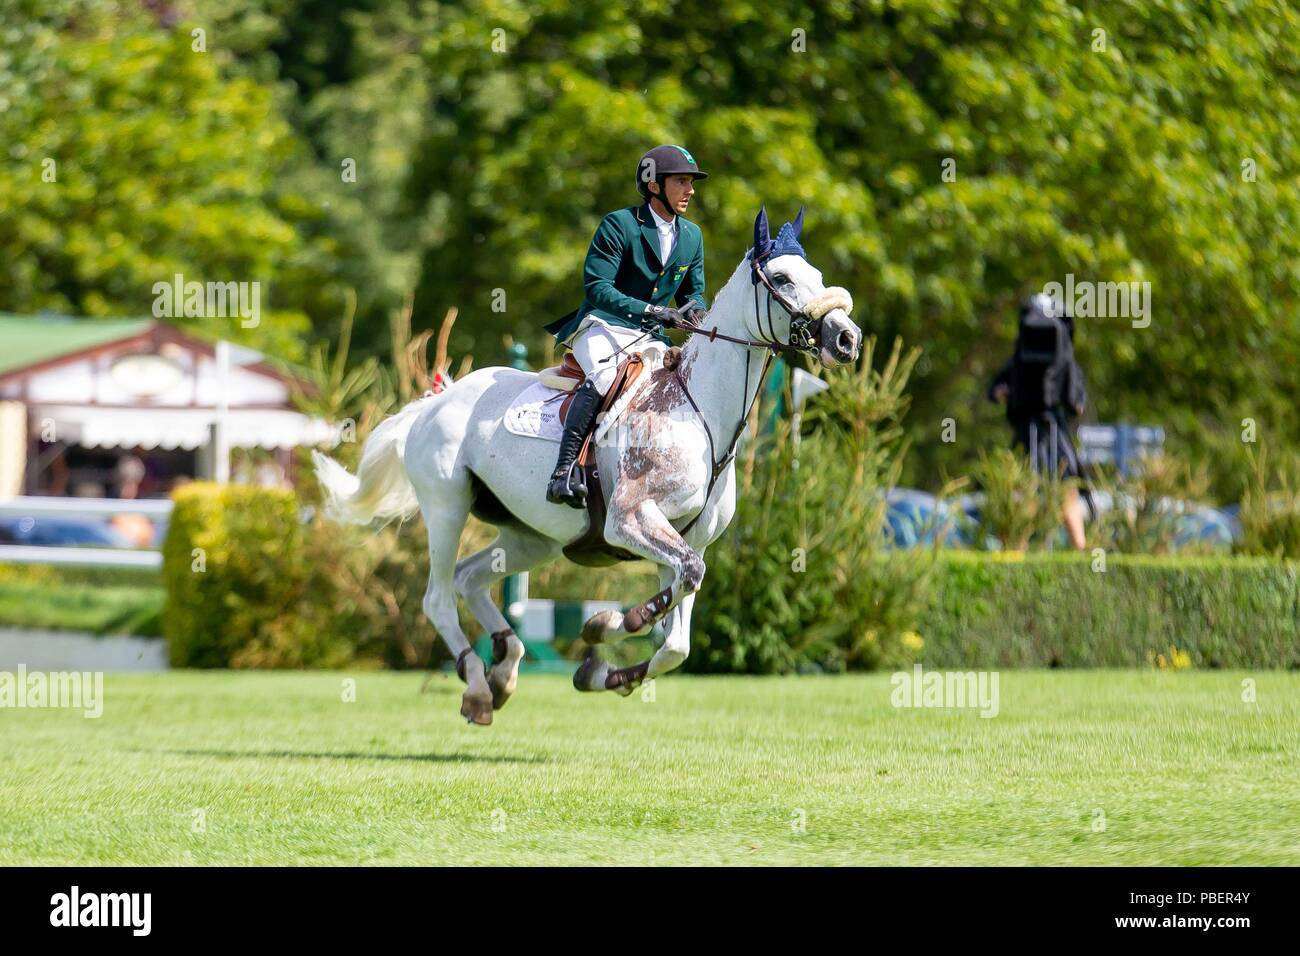 Sussex, UK. 28th July 2018. 3rd Place. Marlon Modolo Zanotelli riding Isabeau De Laubry.  BRA. The Bunn Lesiure Salver. Jump off. Showjumping. Longines FEI Jumping Nations Cup of Great Britain at the BHS Royal International Horse Show. All England Jumping Course. Hickstead. Great Britain. 28/07/2018. Credit: Sport In Pictures/Alamy Live News - Stock Image